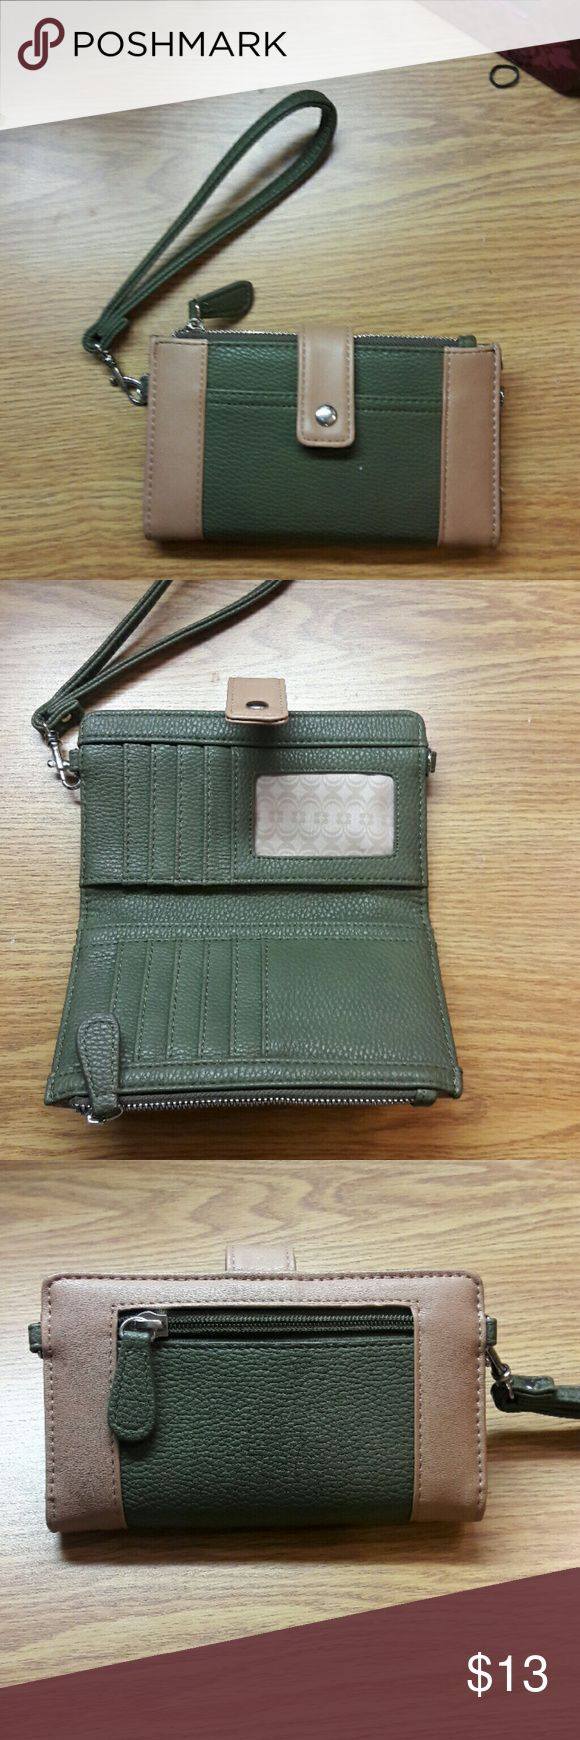 Clutch/Wallet/Wristlet Earth tones. Green and brown clutch Bags Clutches & Wristlets